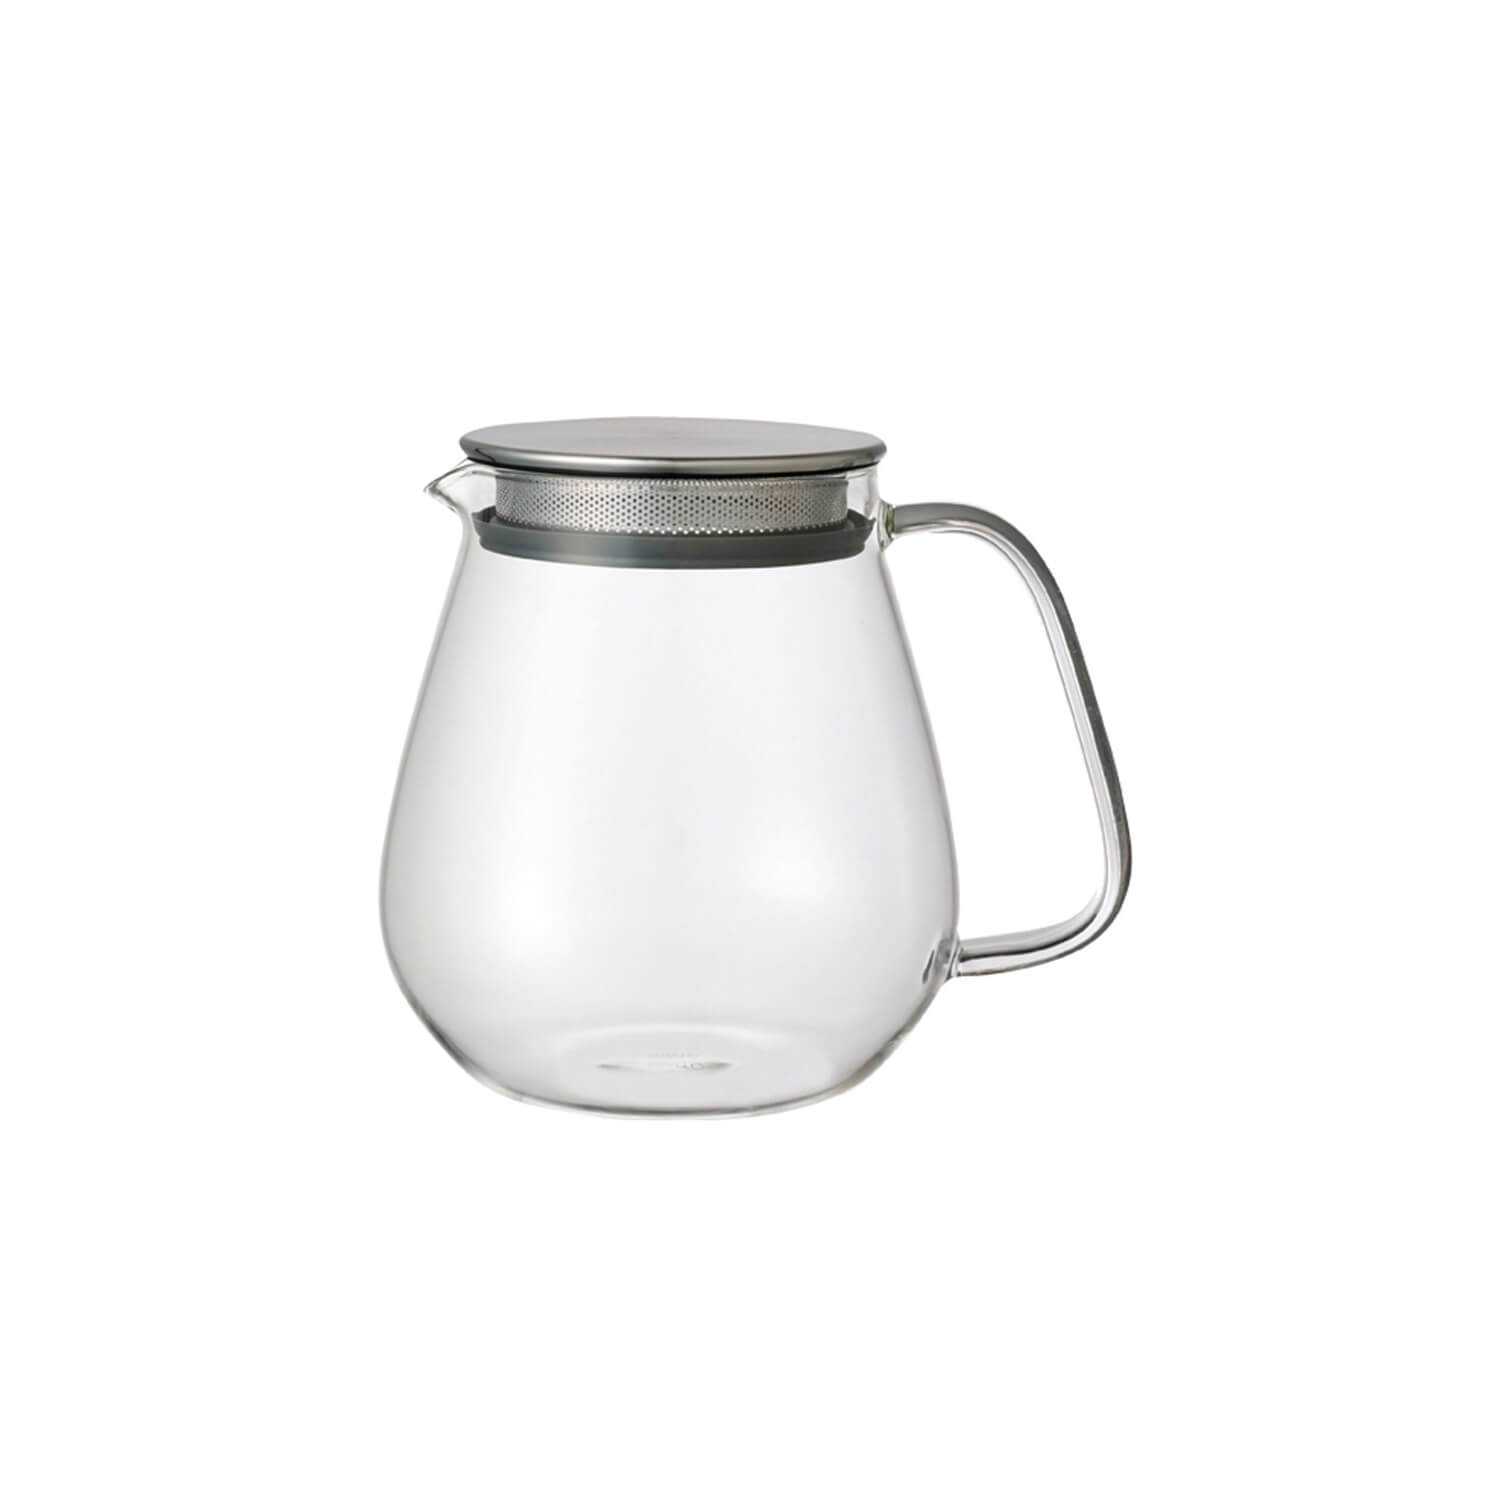 Theepot - Kinto - Unitea one touche teapot - 460 ml